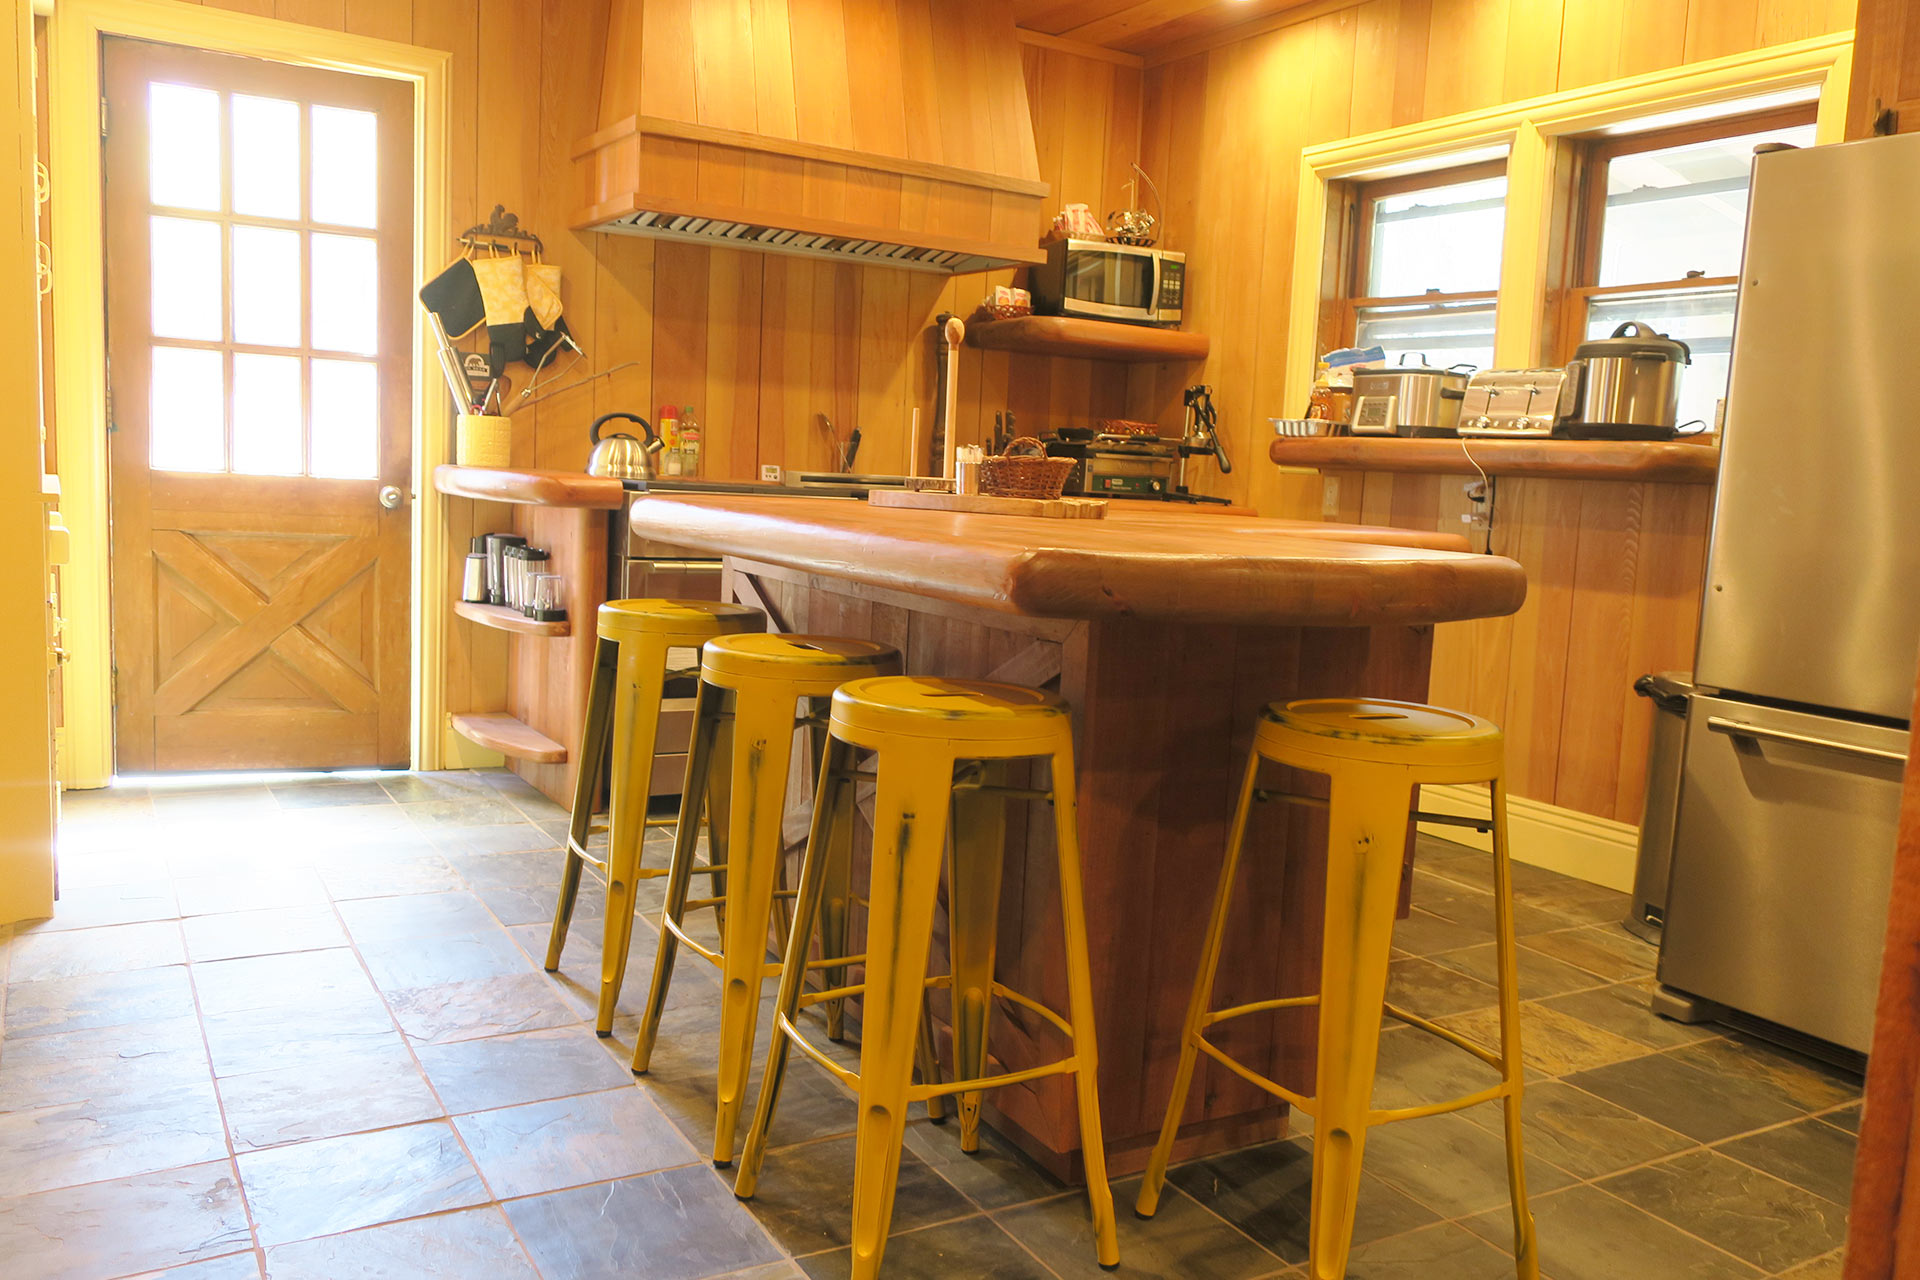 Knickerbocker mansion kitchen with yellow barstools for seating around the island